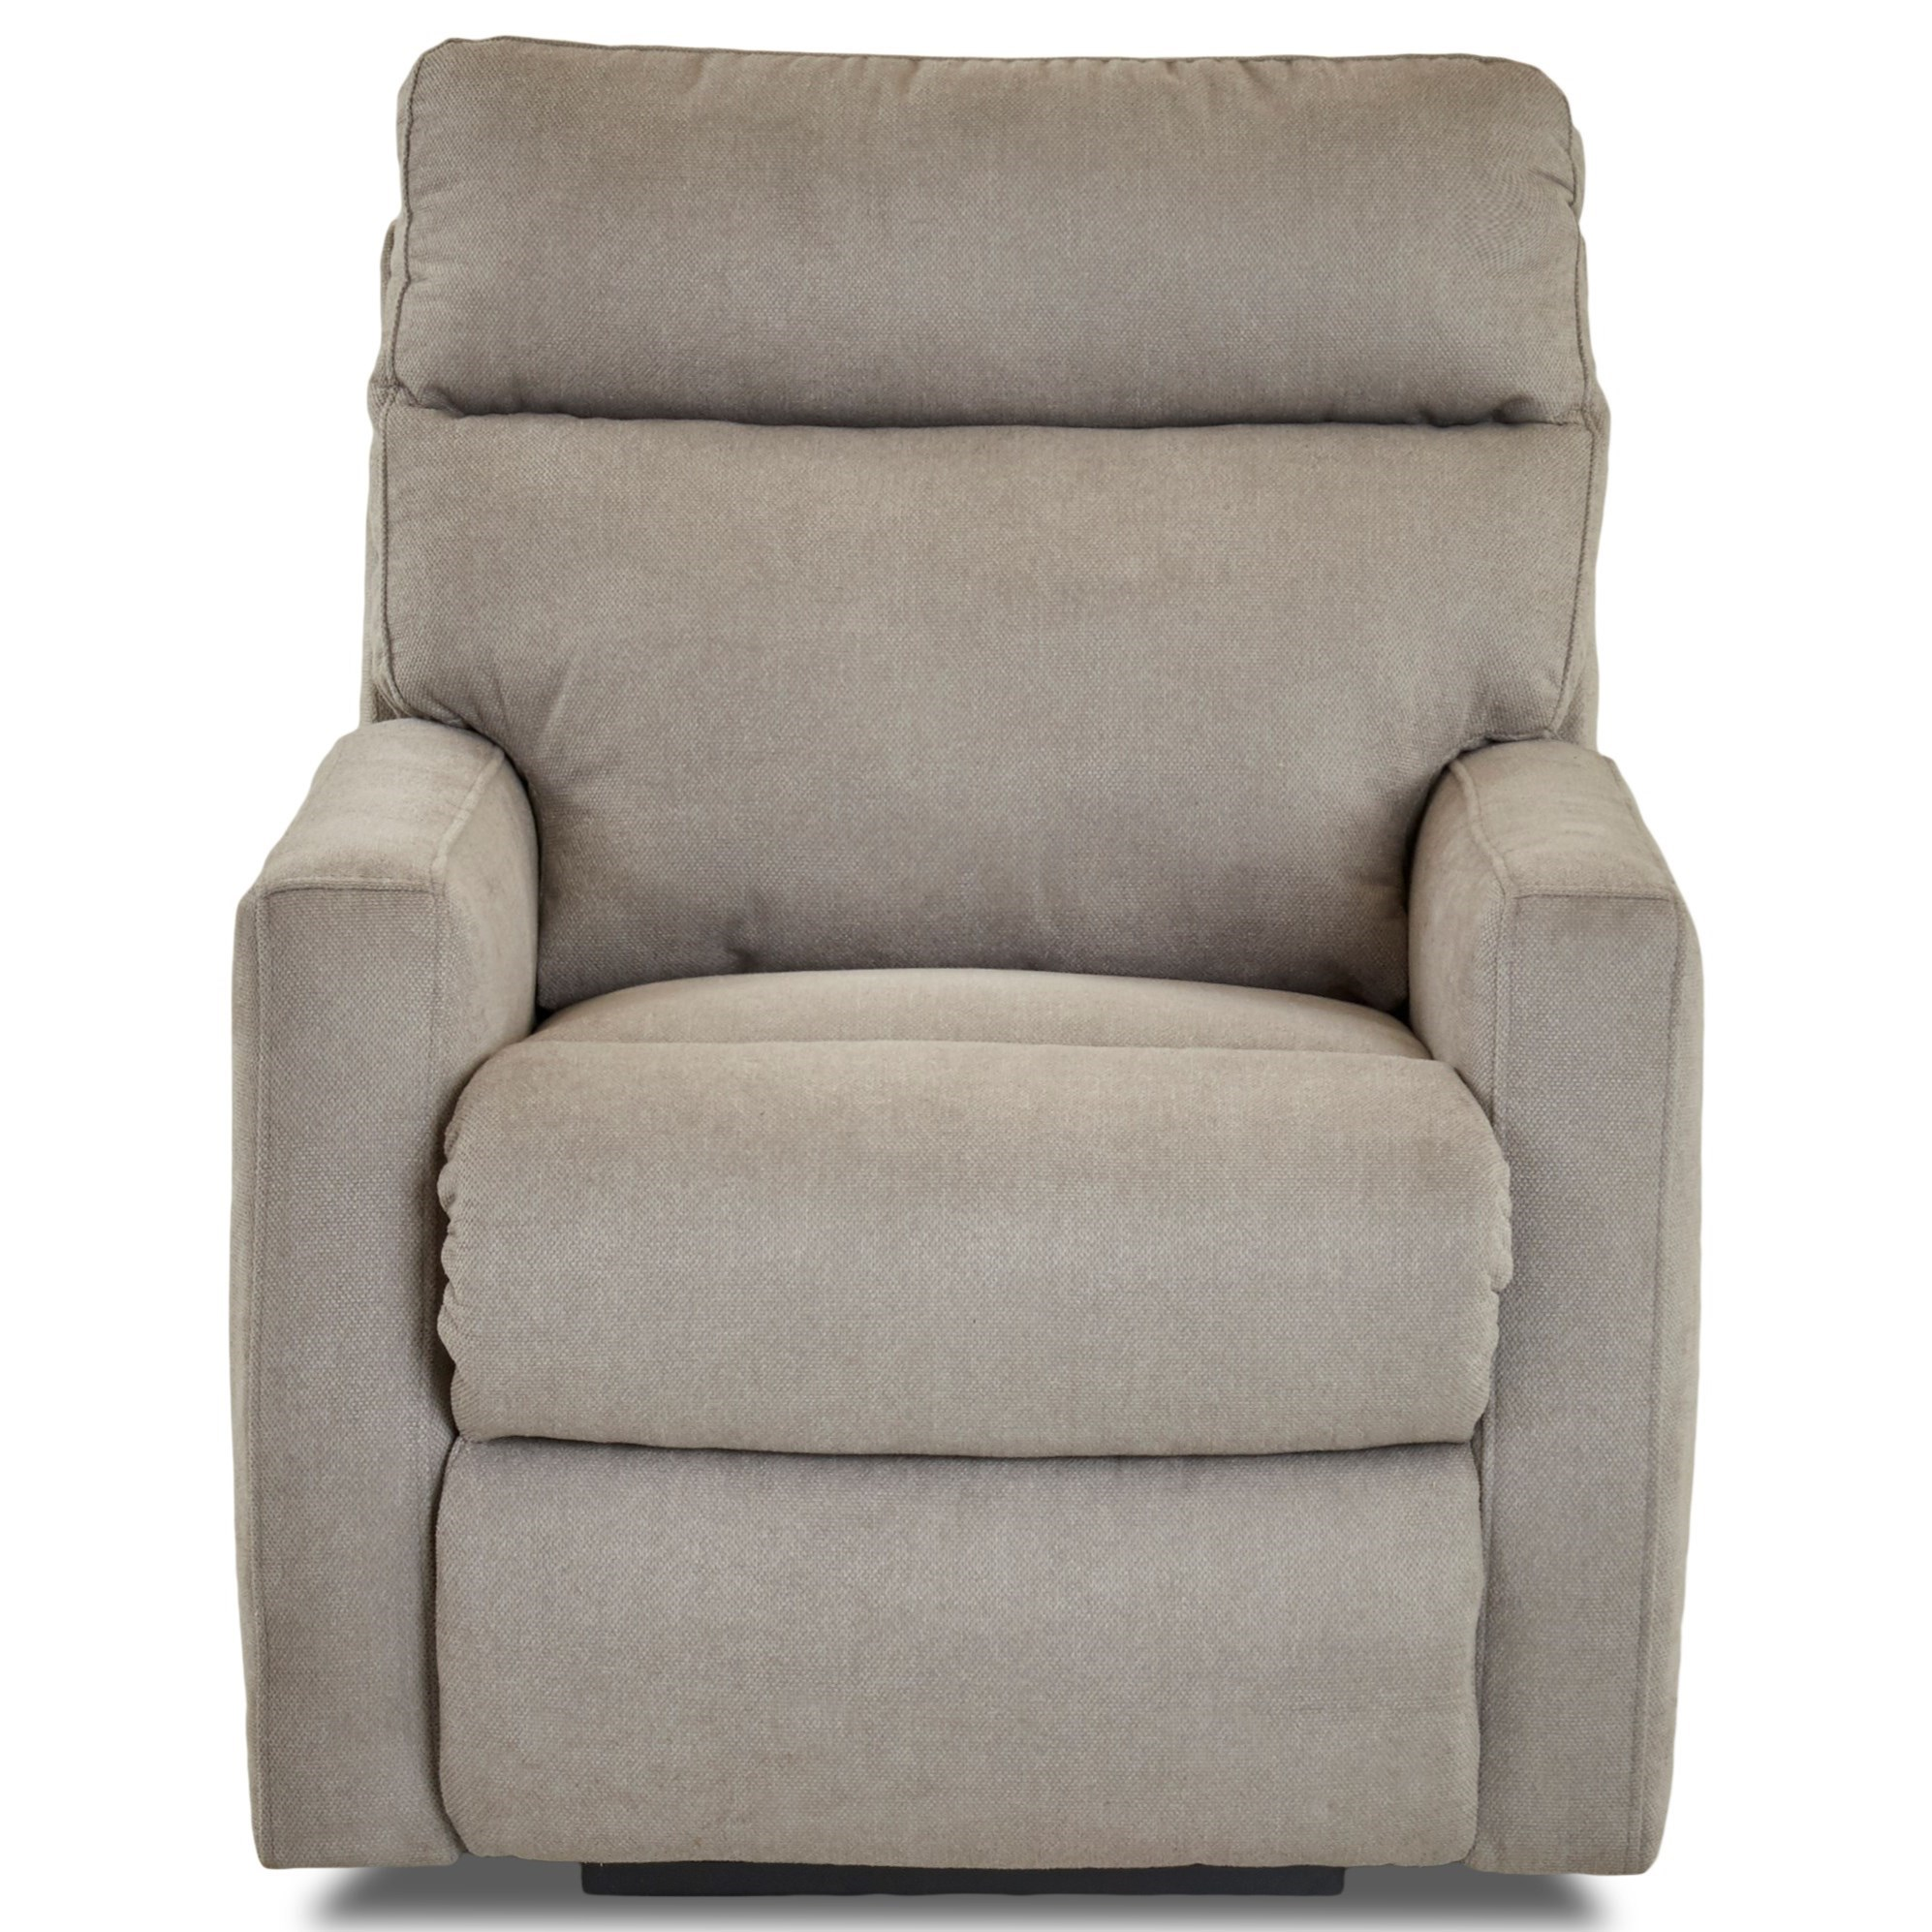 Daphne Power Reclining Chair by Klaussner at Northeast Factory Direct